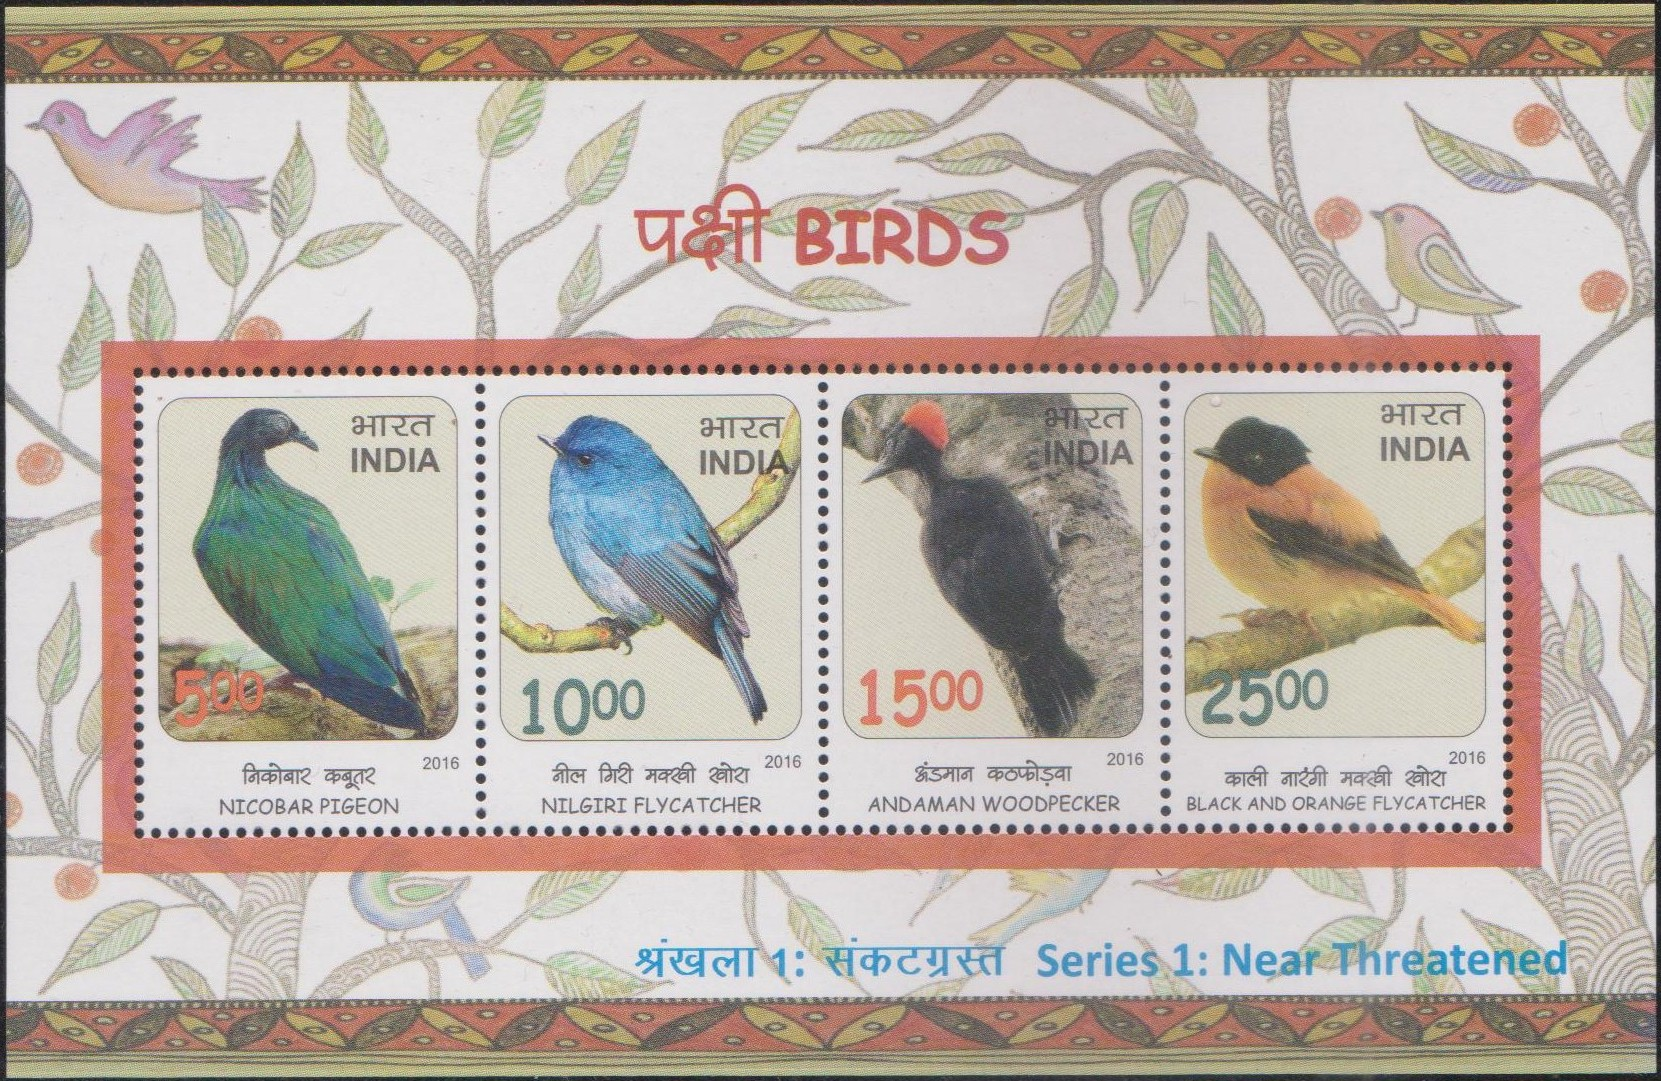 Nicobar pigeon, Nilgiri & Black-and-orange flycatcher and Andaman woodpecker